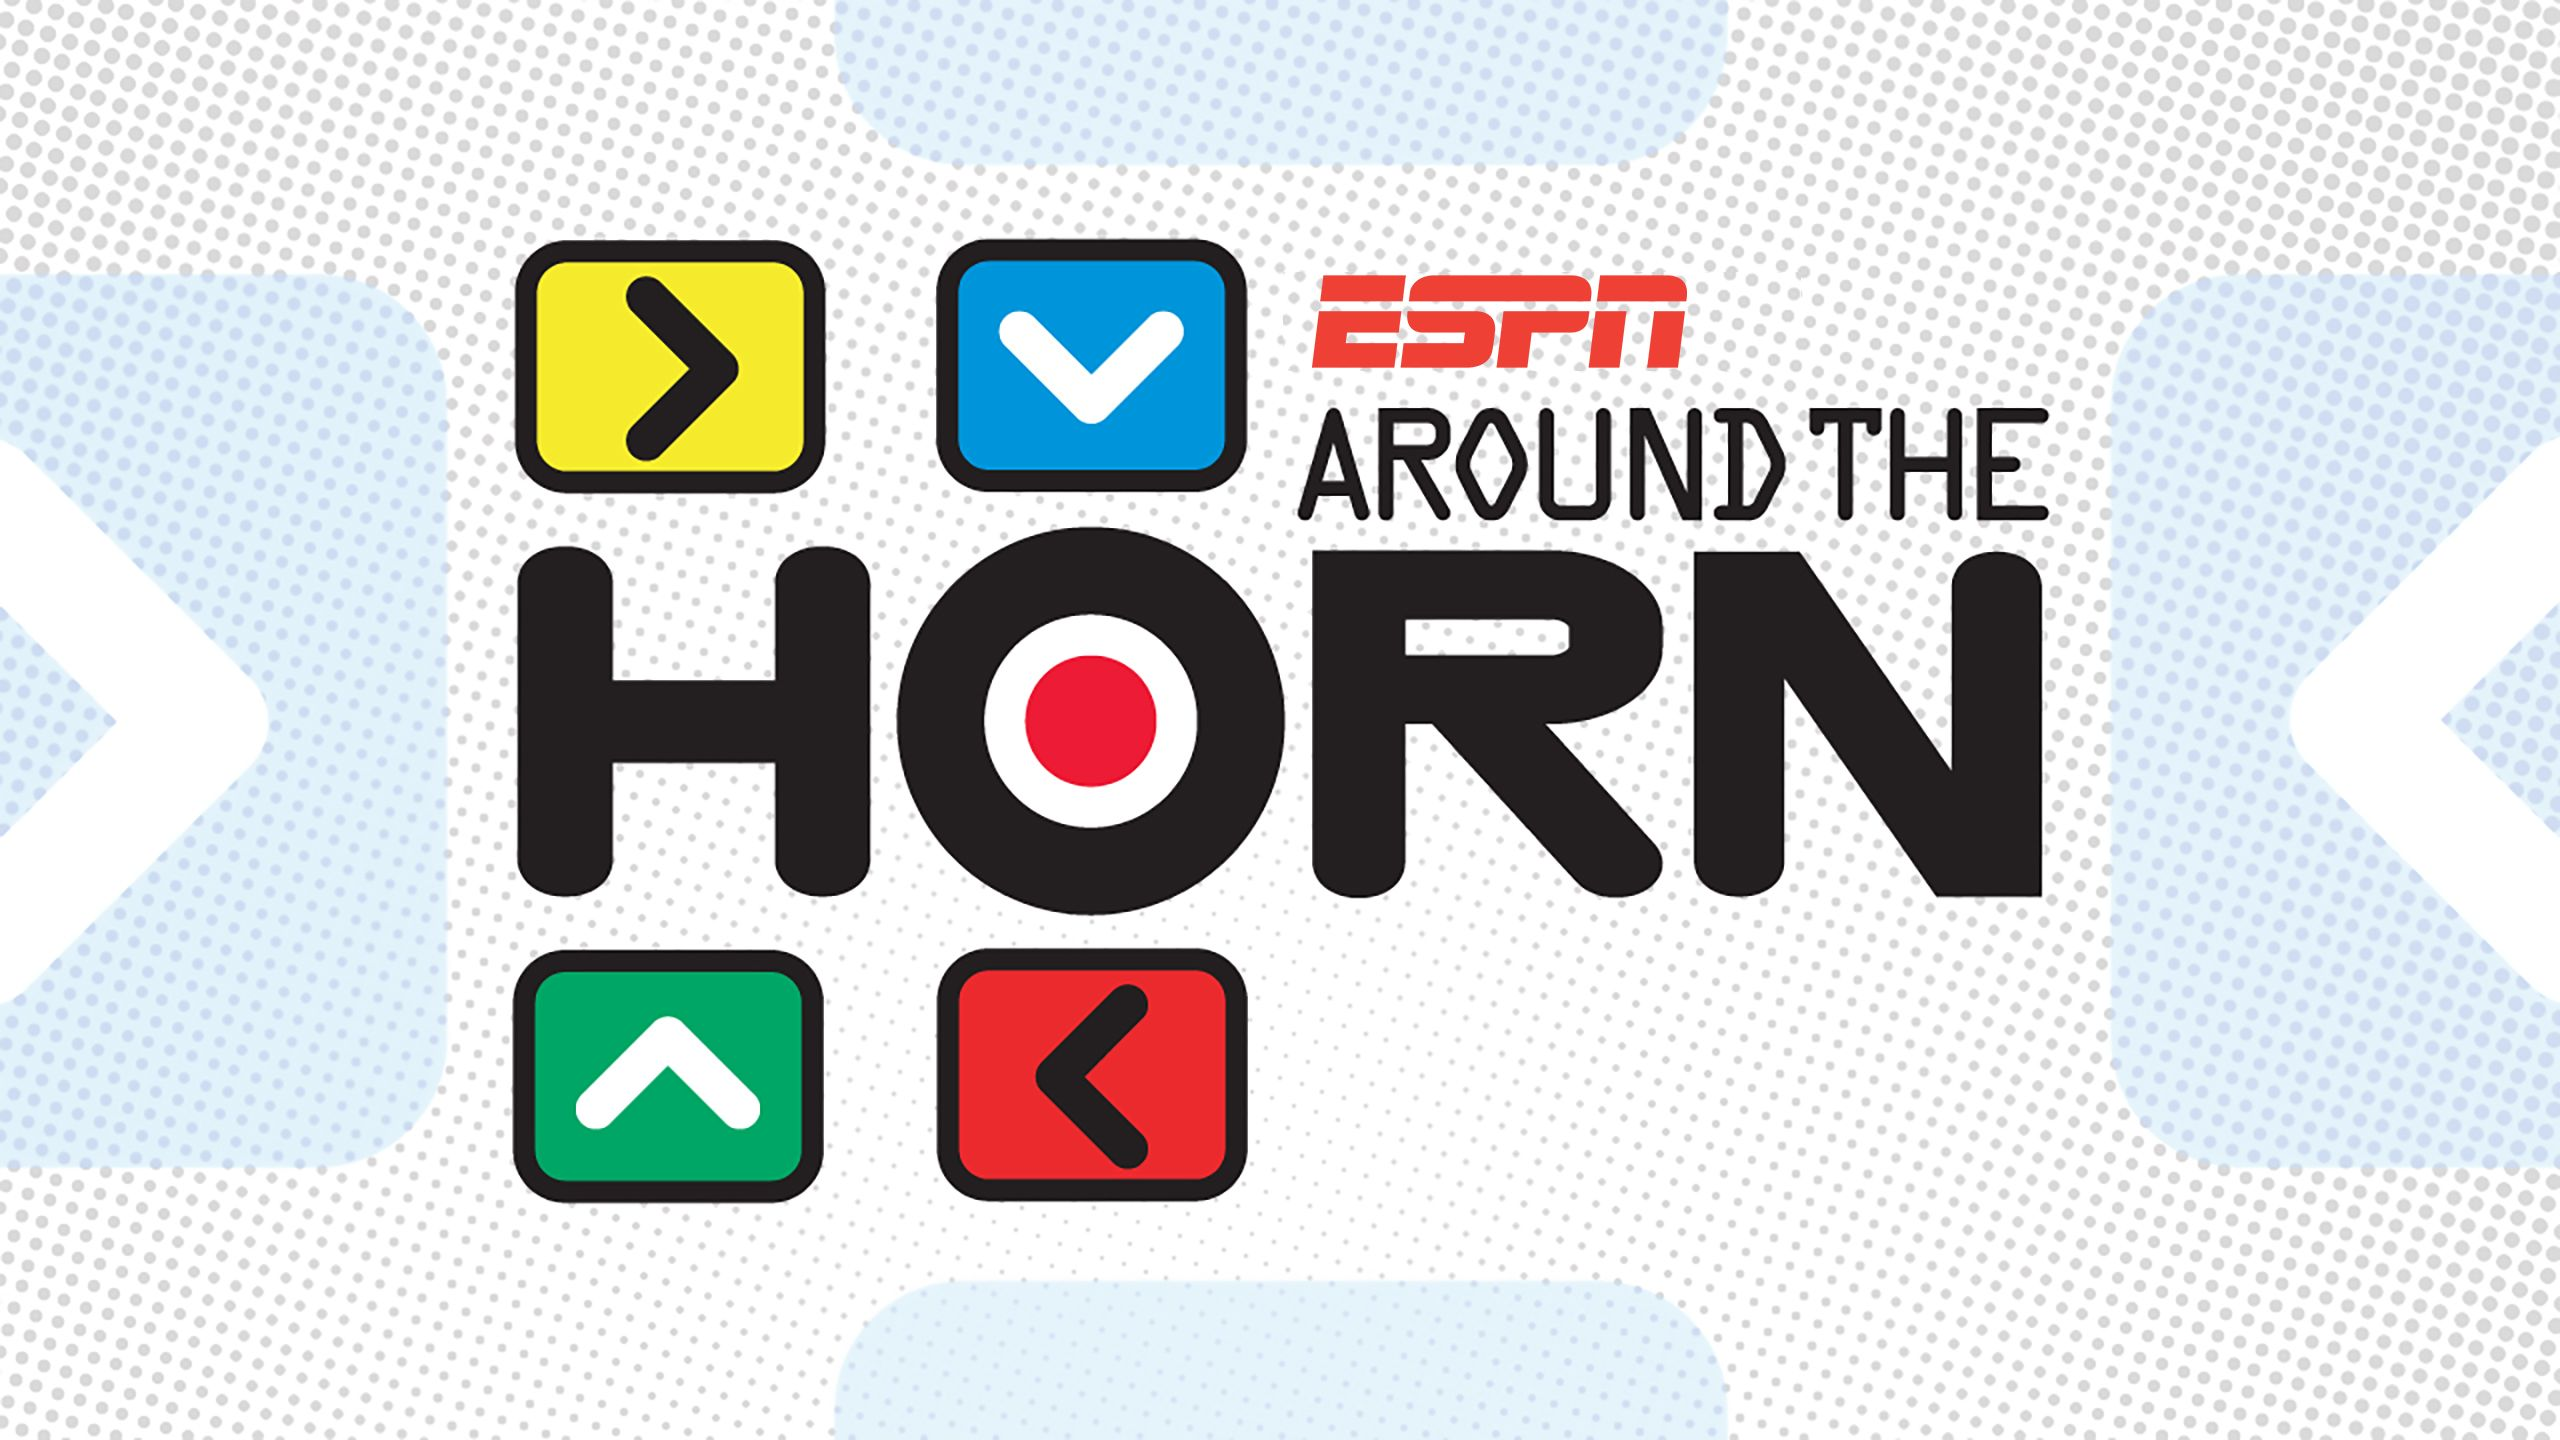 Wed, 3/21 - Around The Horn